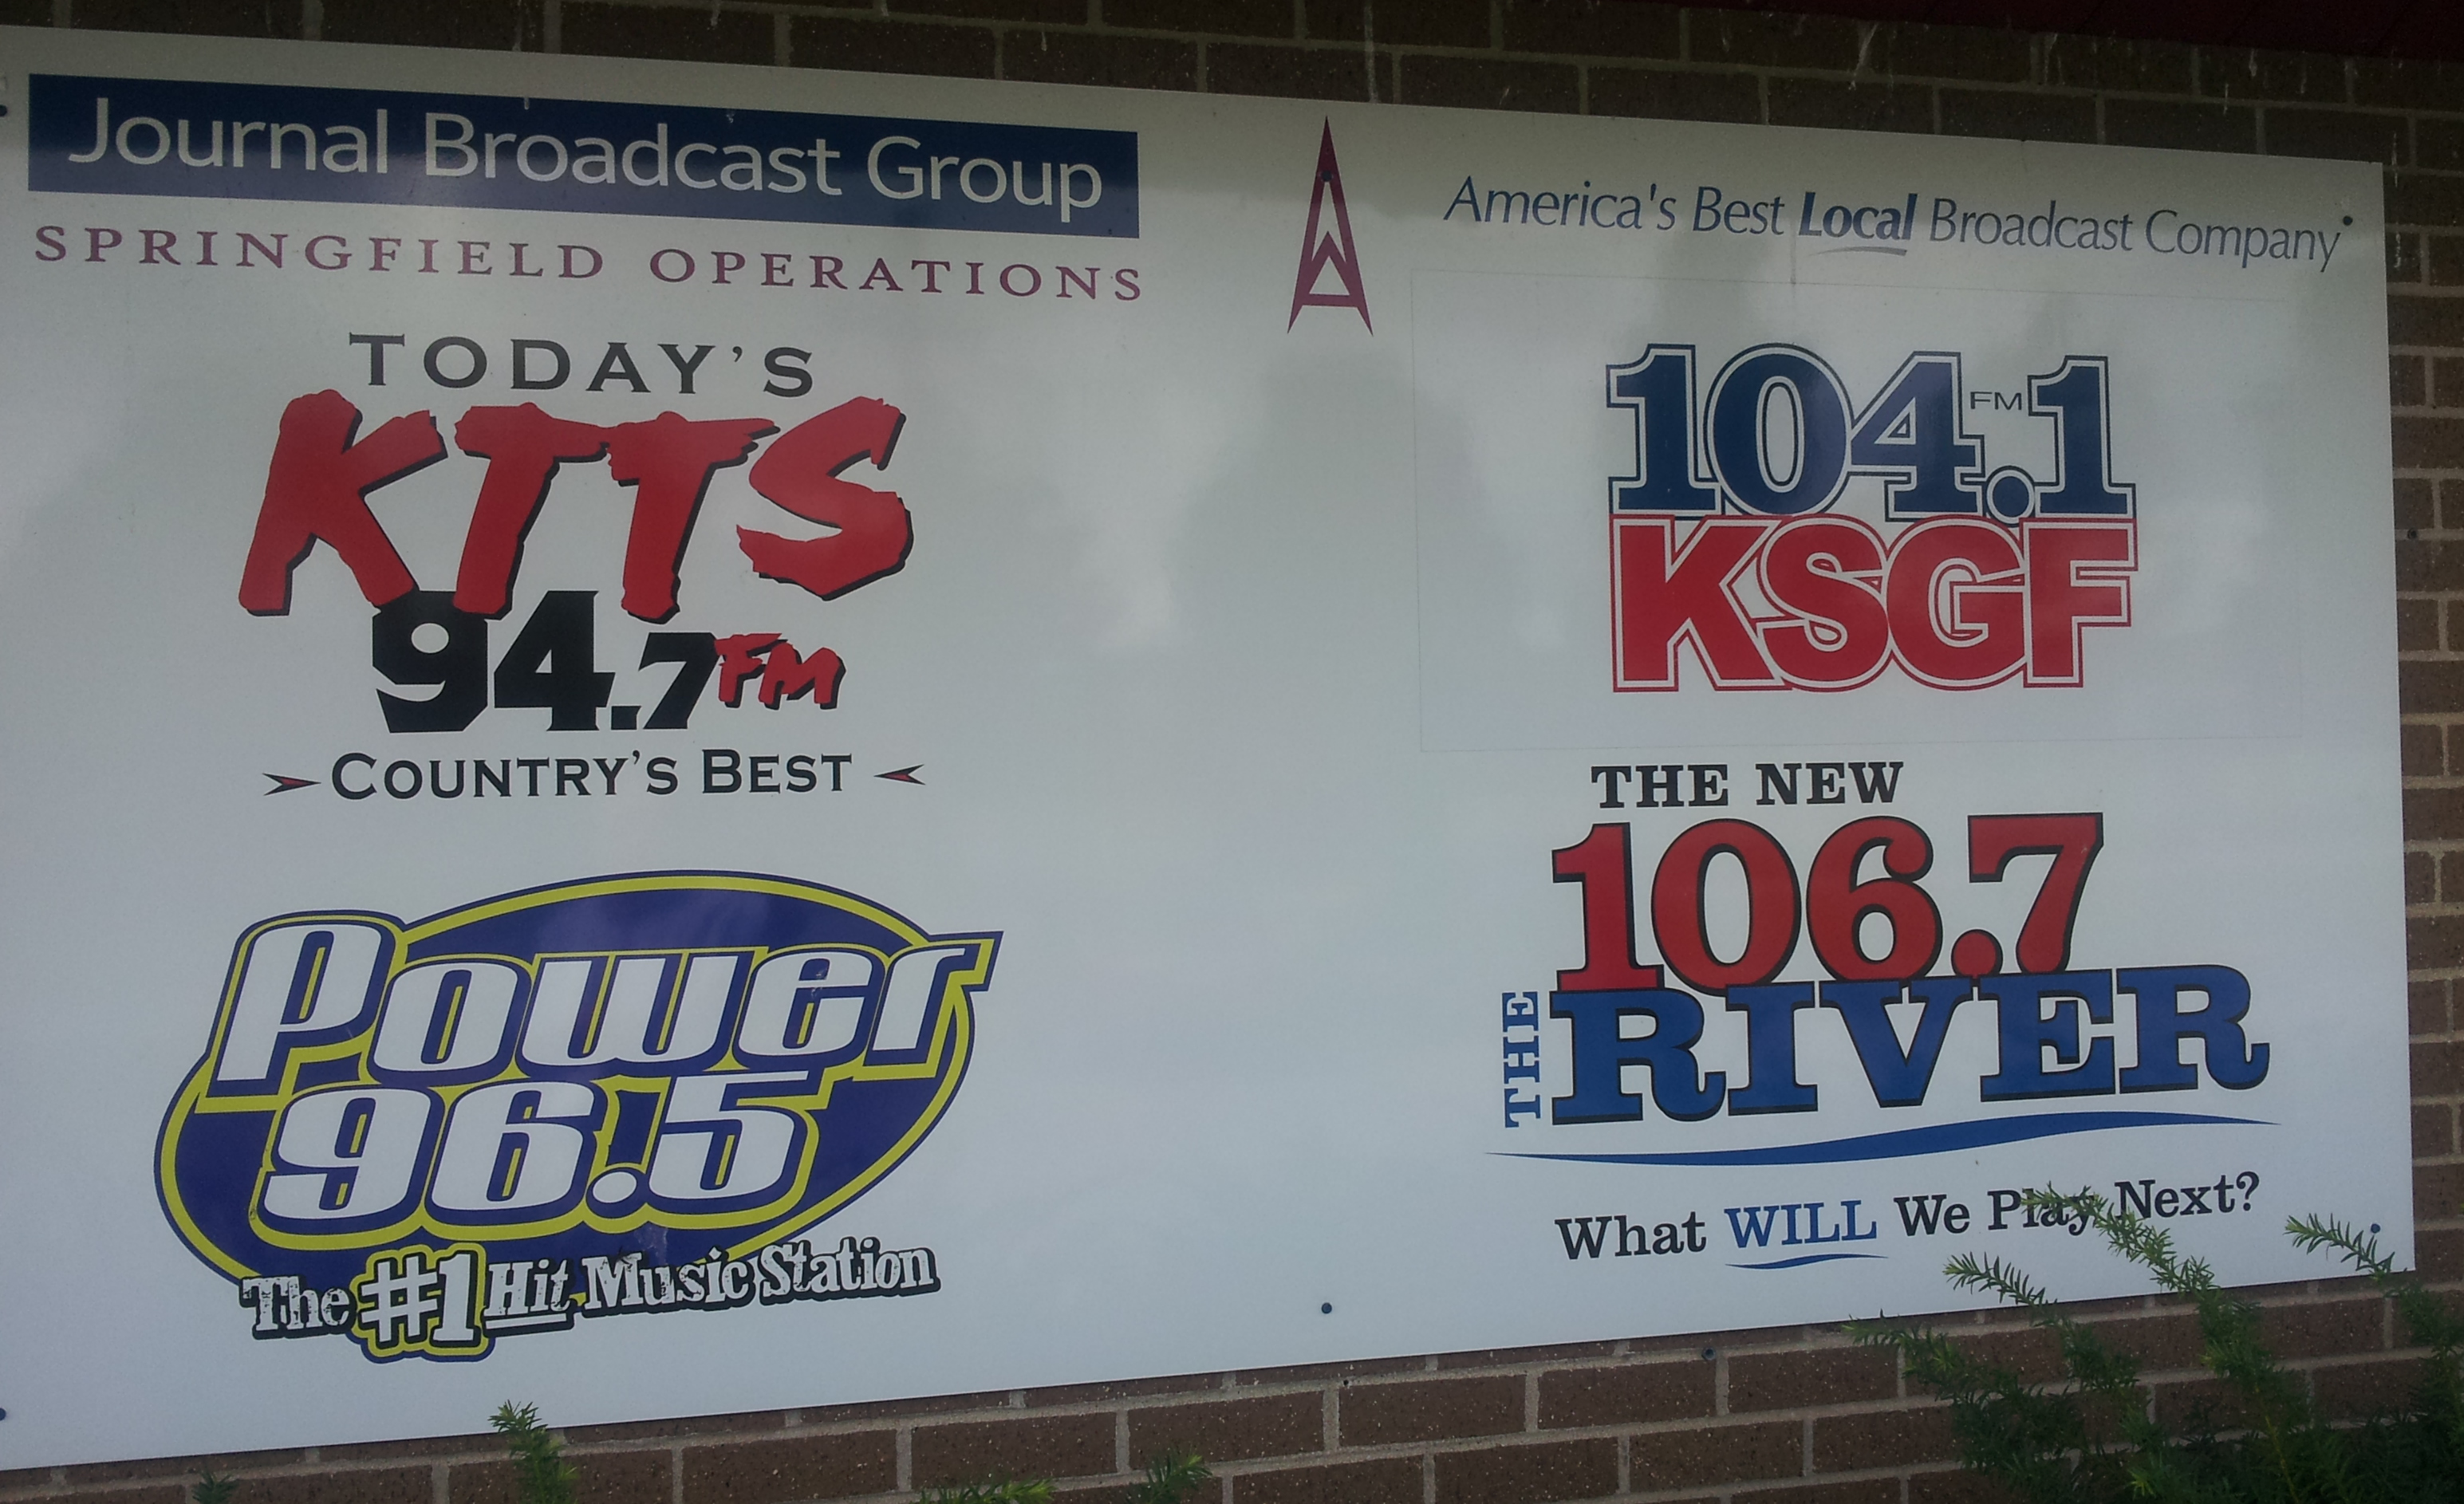 First Meteorologist for KTTS-FM